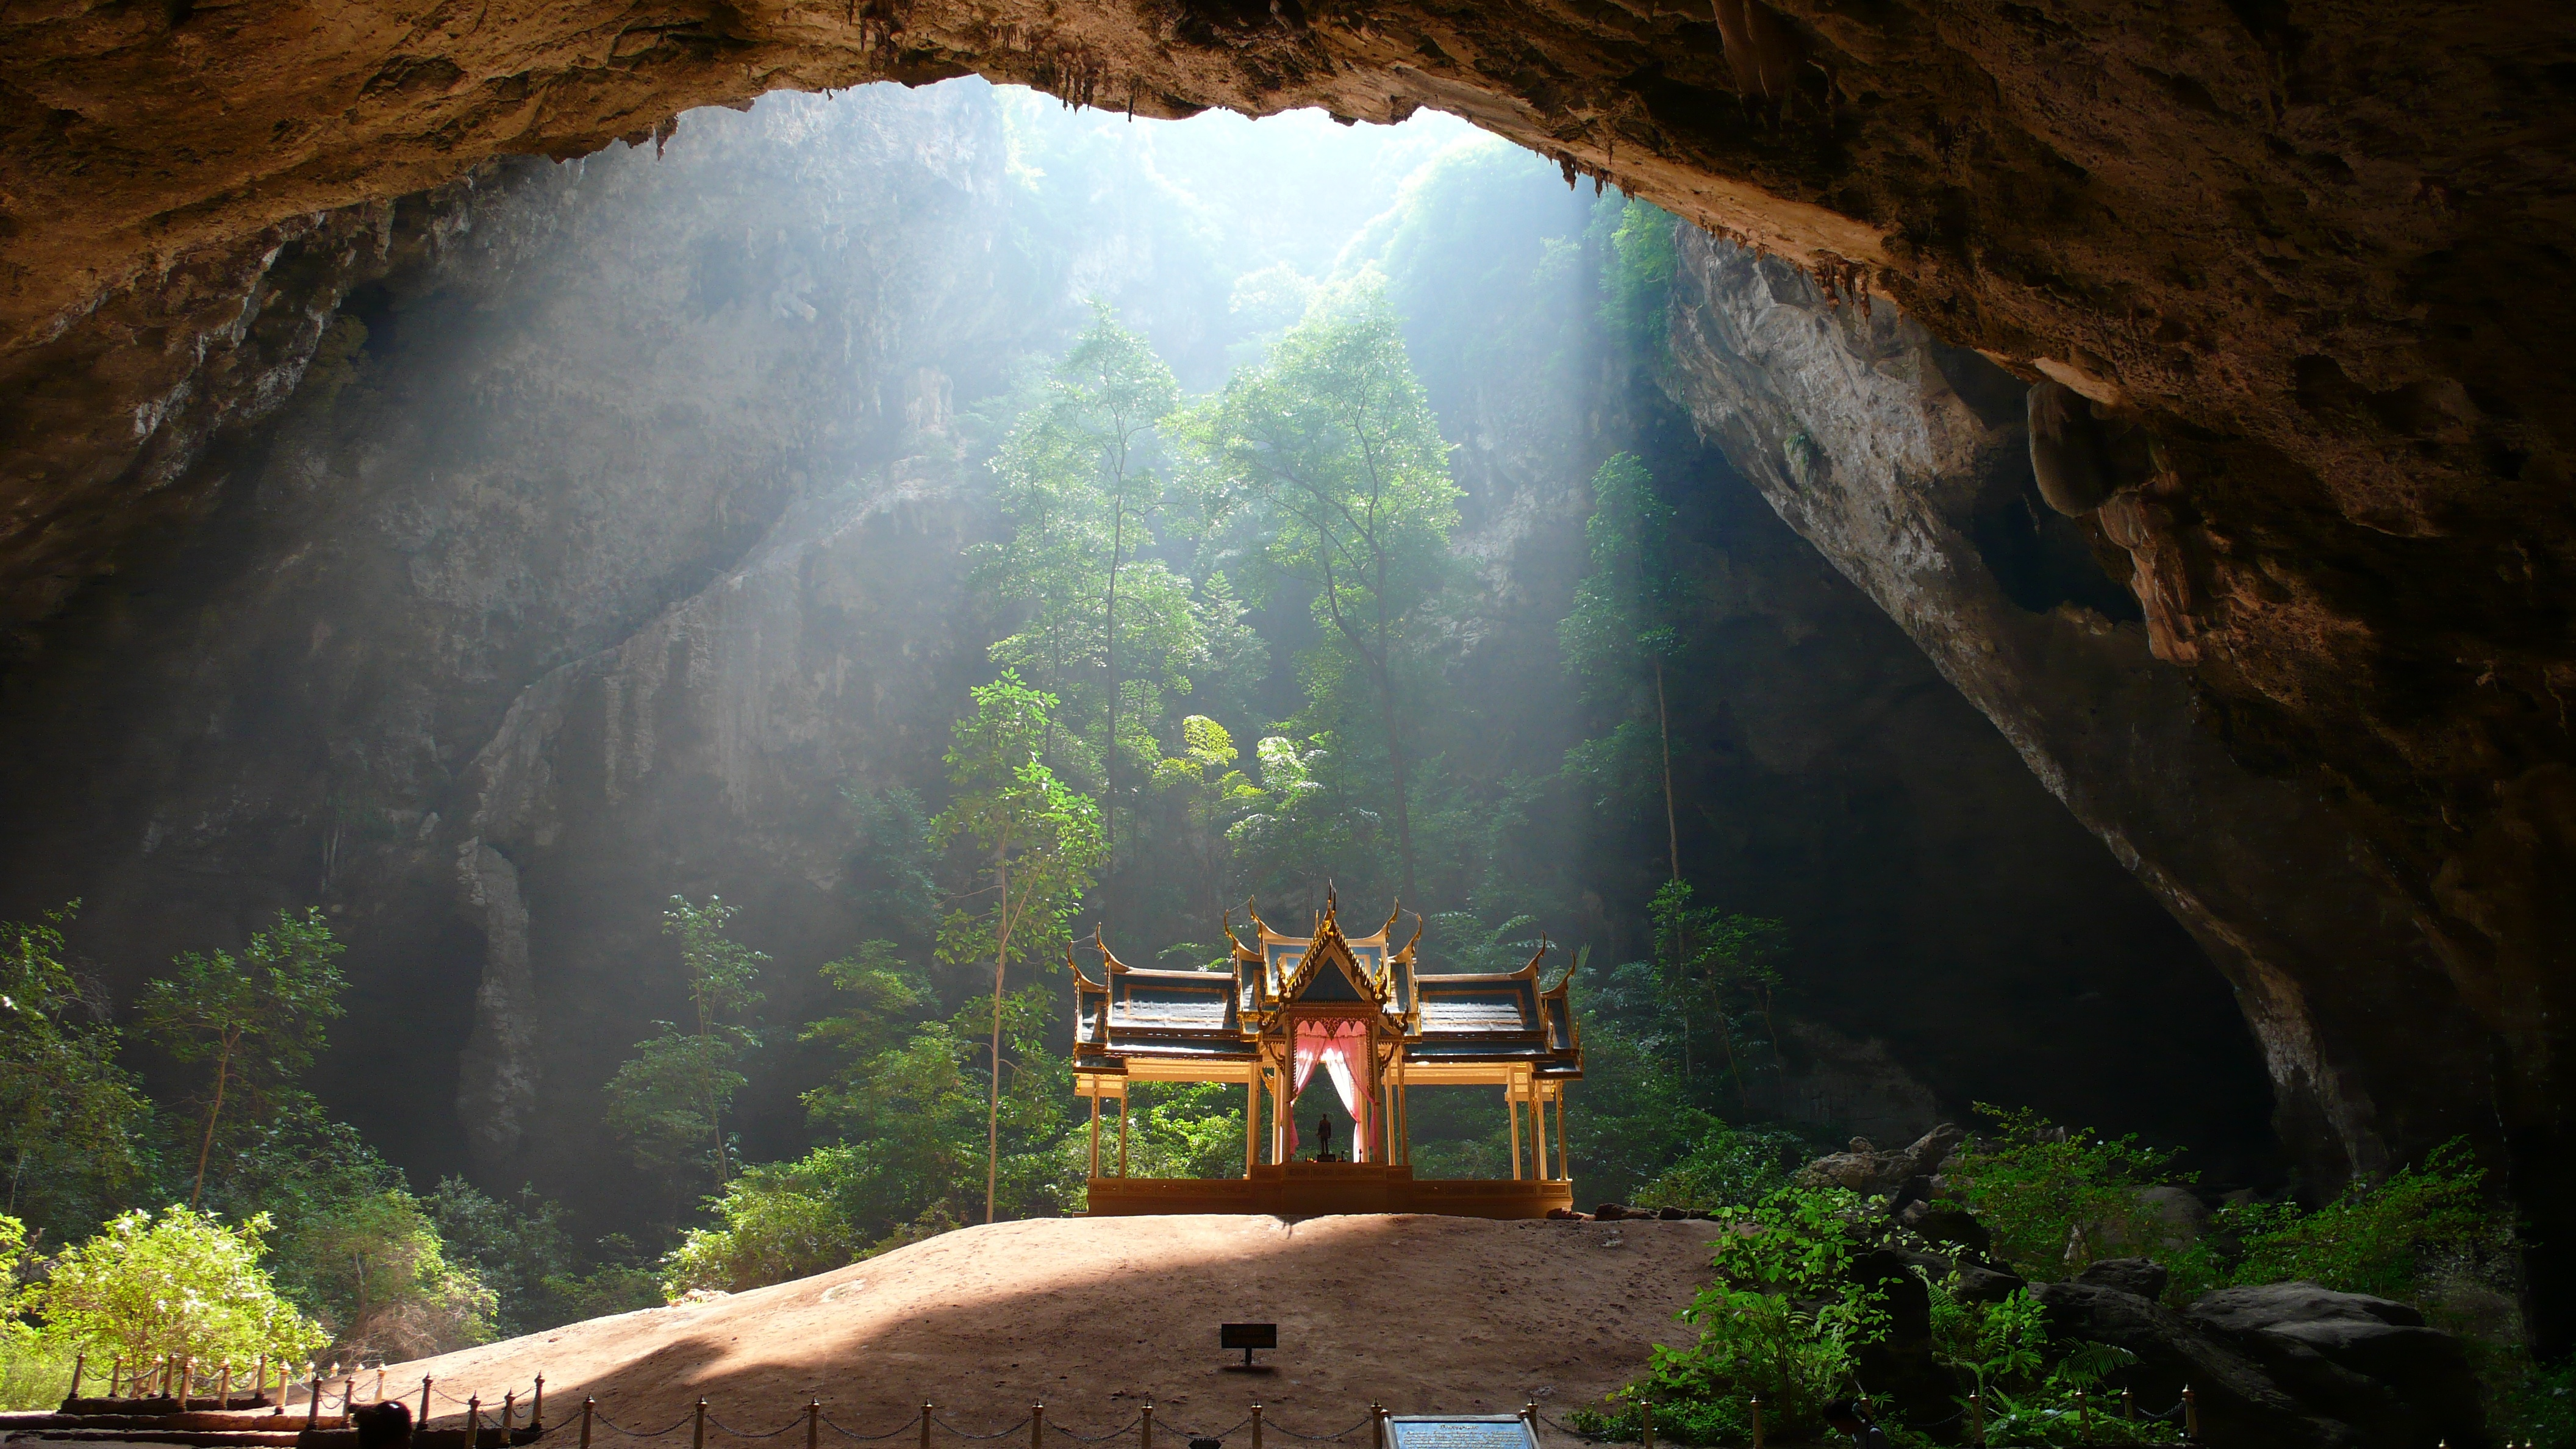 Big world   thailand temple in a cave on the resort rayong  thailand 061721